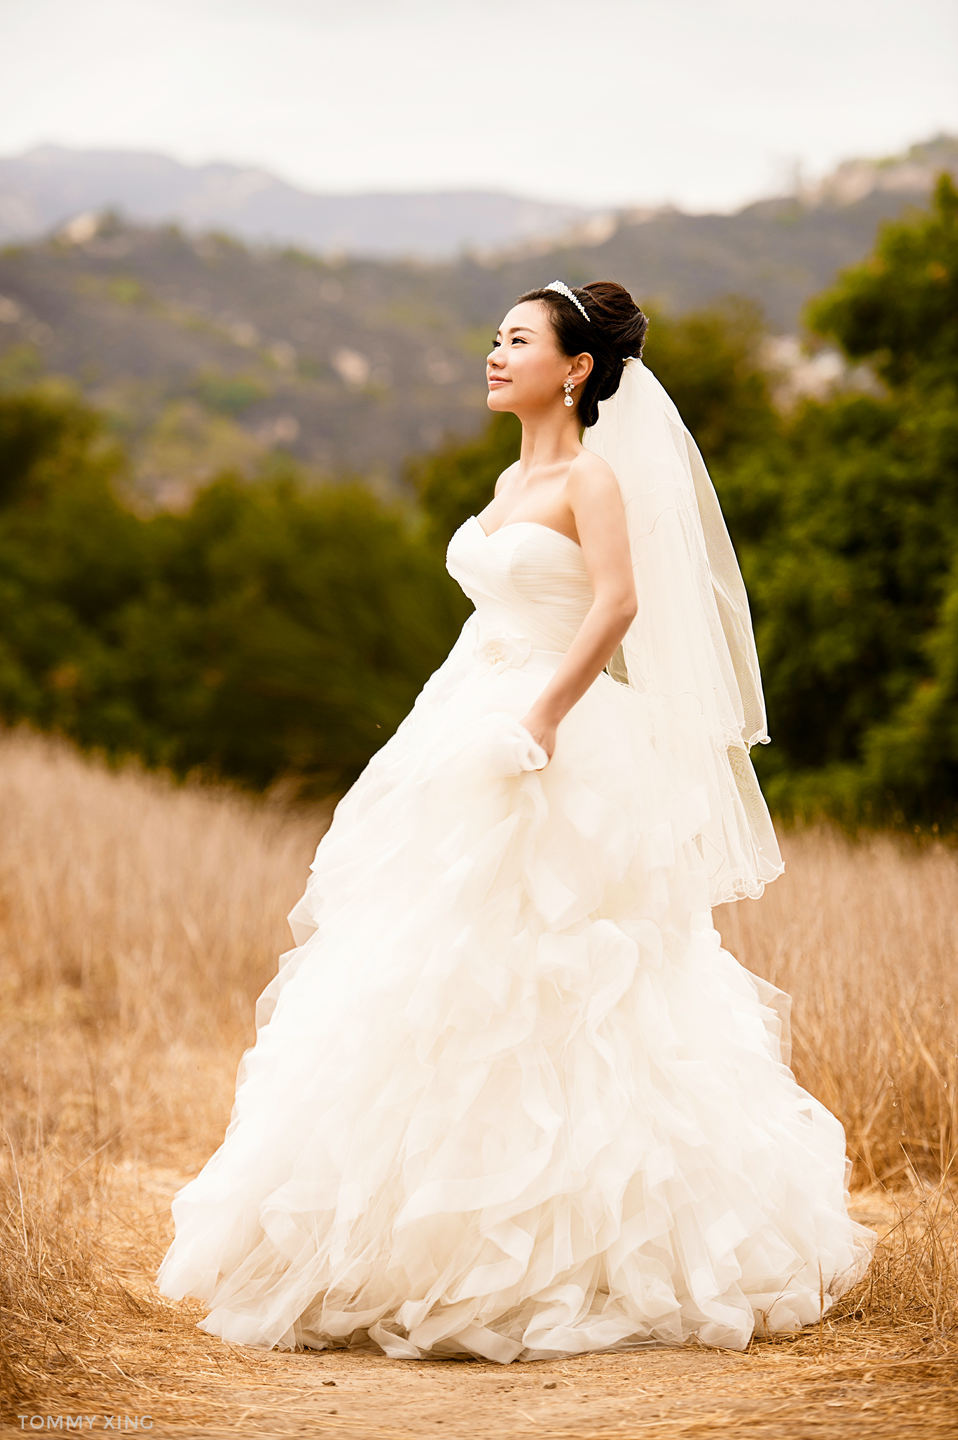 Los Angeles Wedding 洛杉矶婚纱照 Tommy Xing Photography 06.jpg